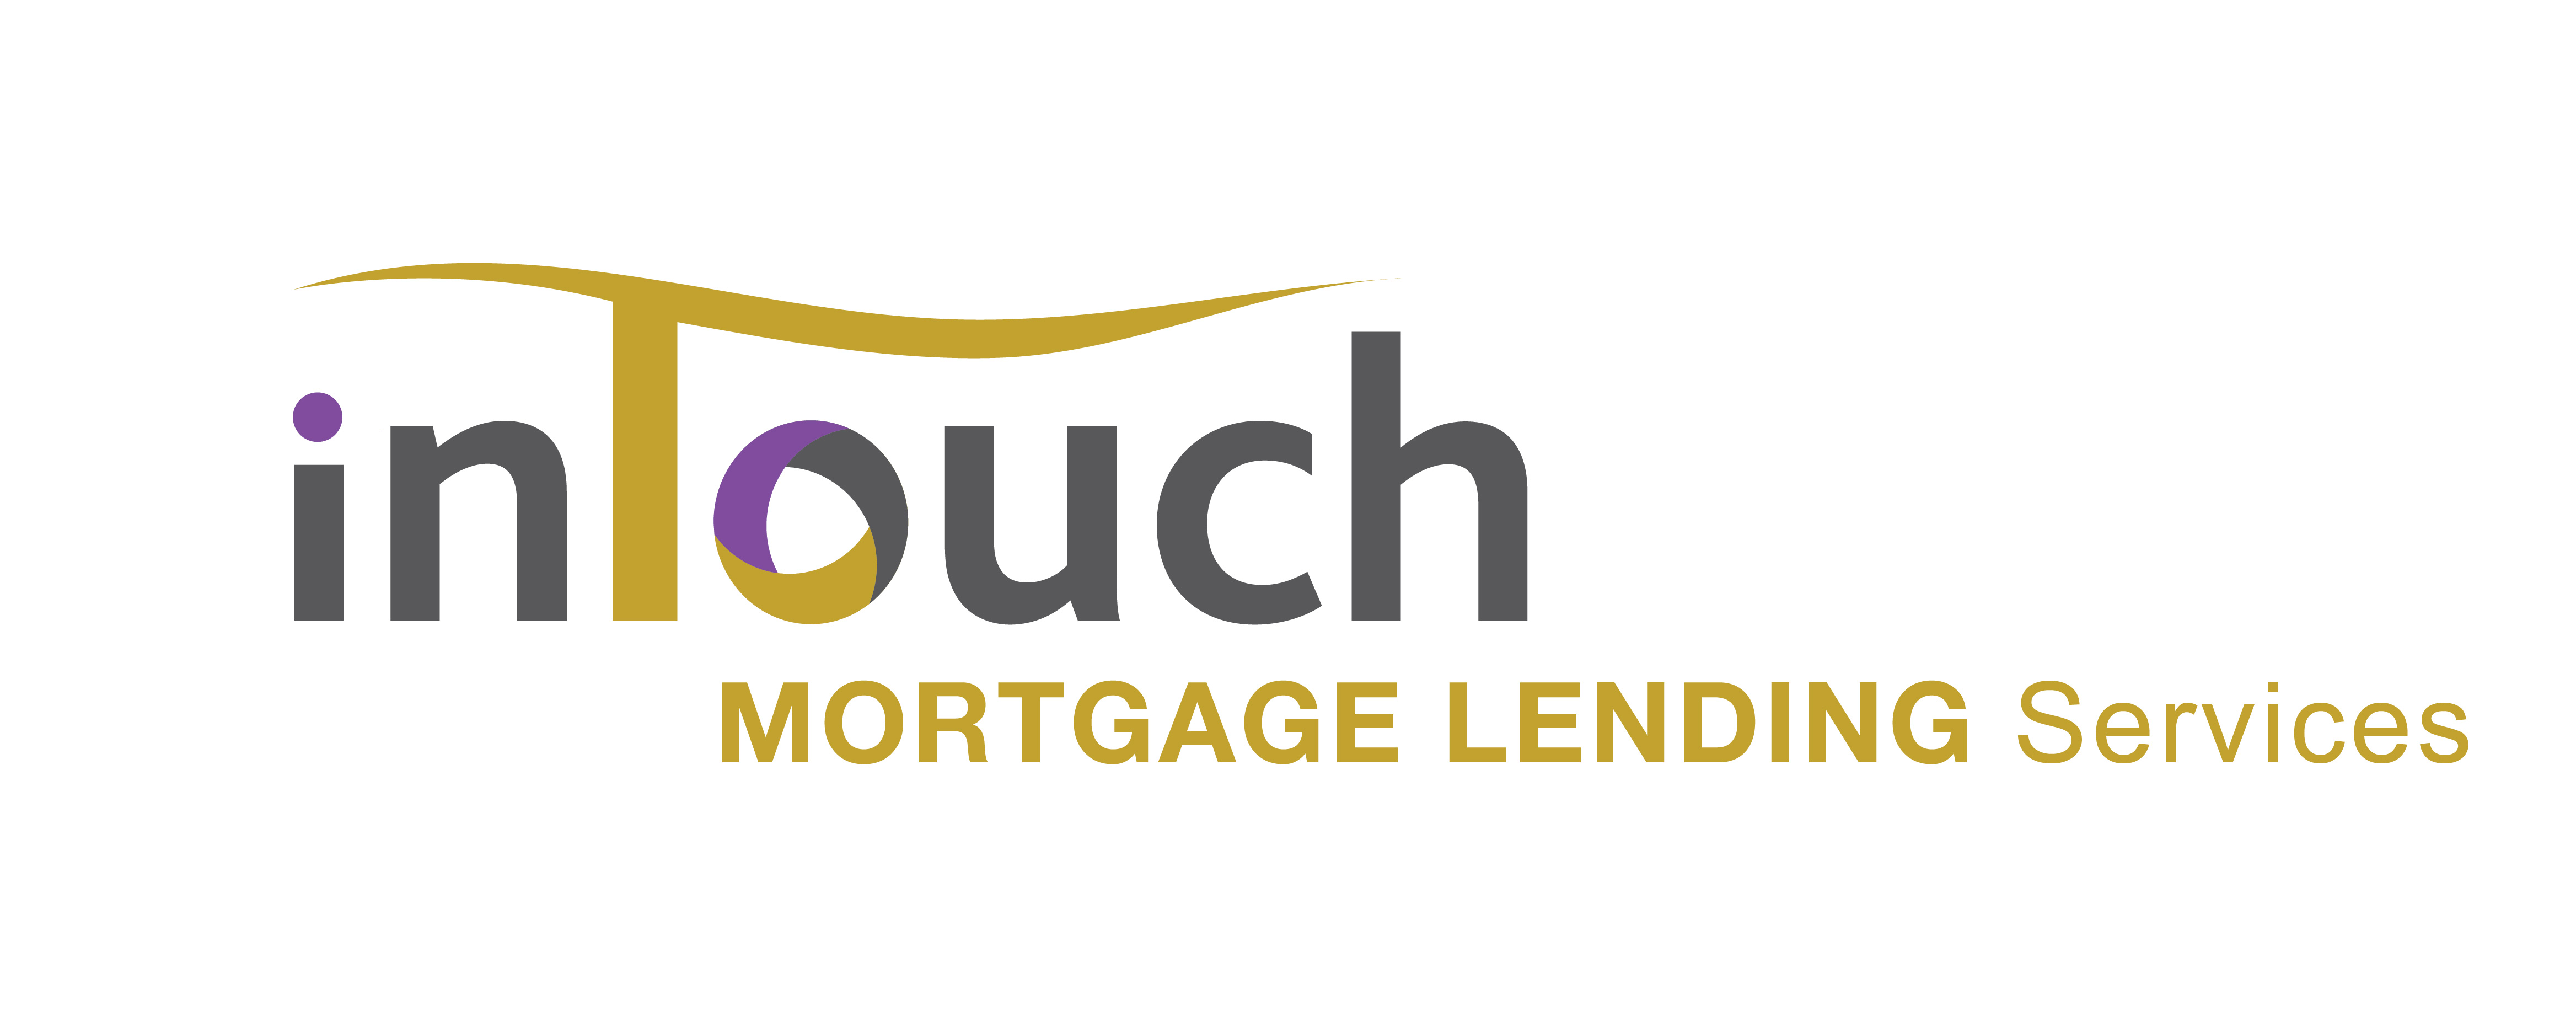 In Touch Mortgage Services